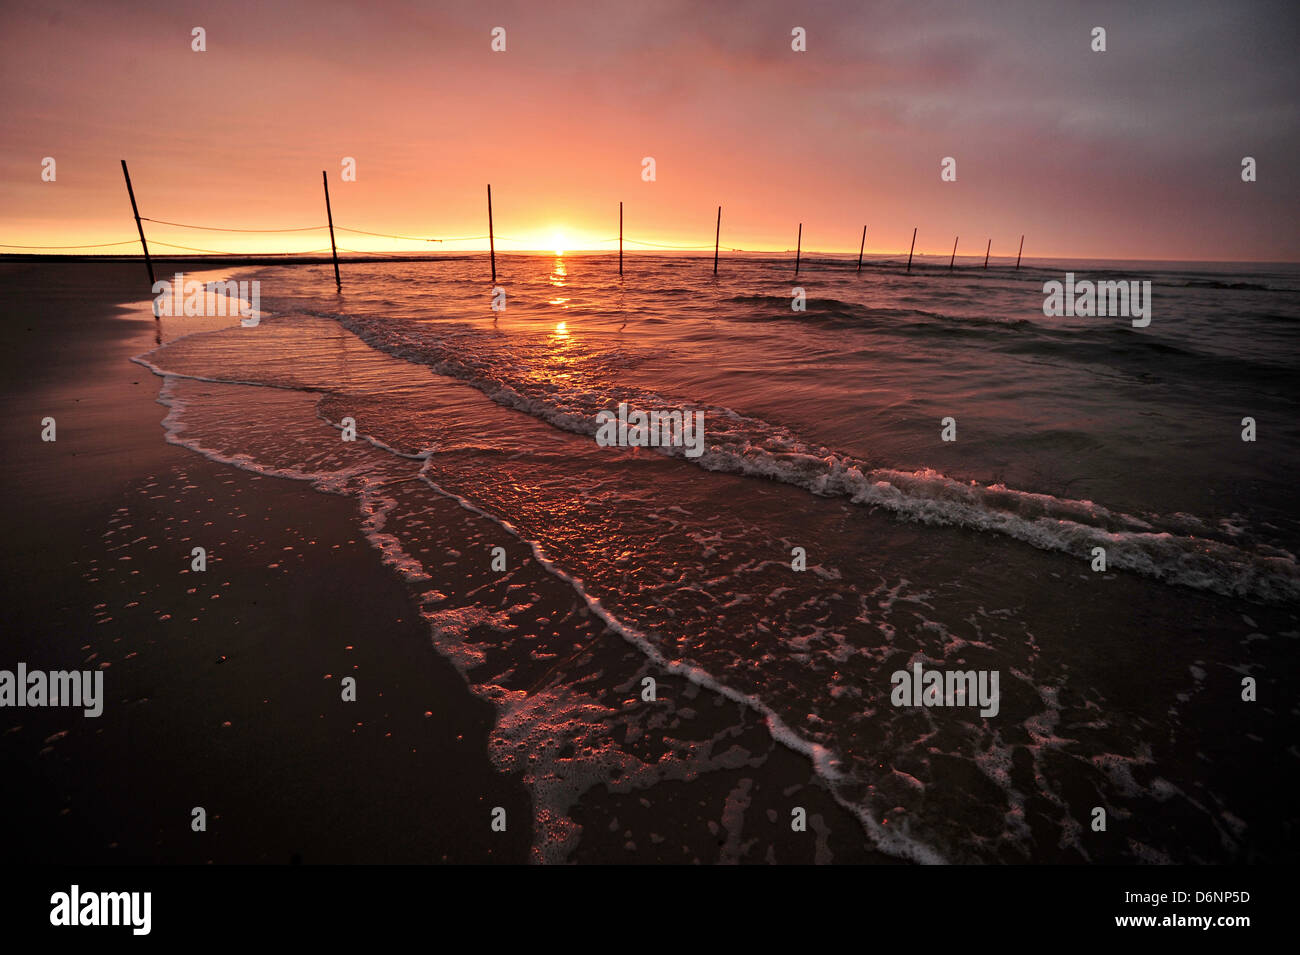 Wangerooge, Germany, Sunset over the North Sea Stock Photo